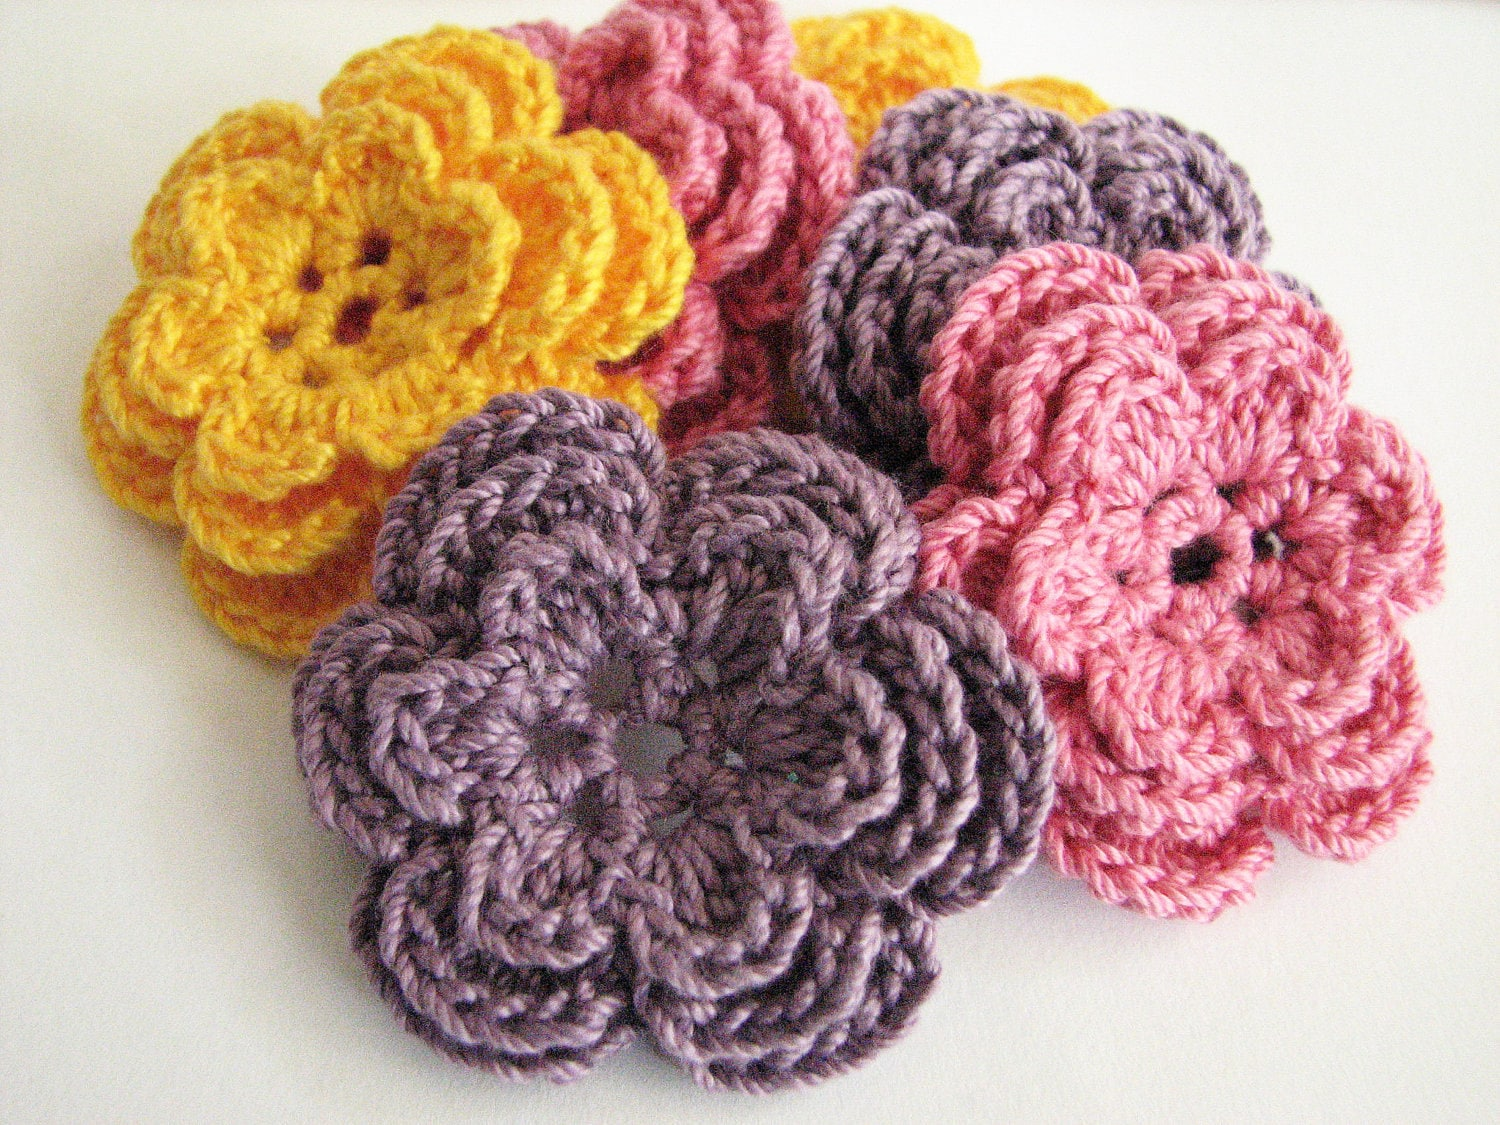 Crochet Yellow Flower Pattern : Crochet Flower Appliques 6 Handmade Three Layer by LMCrochet